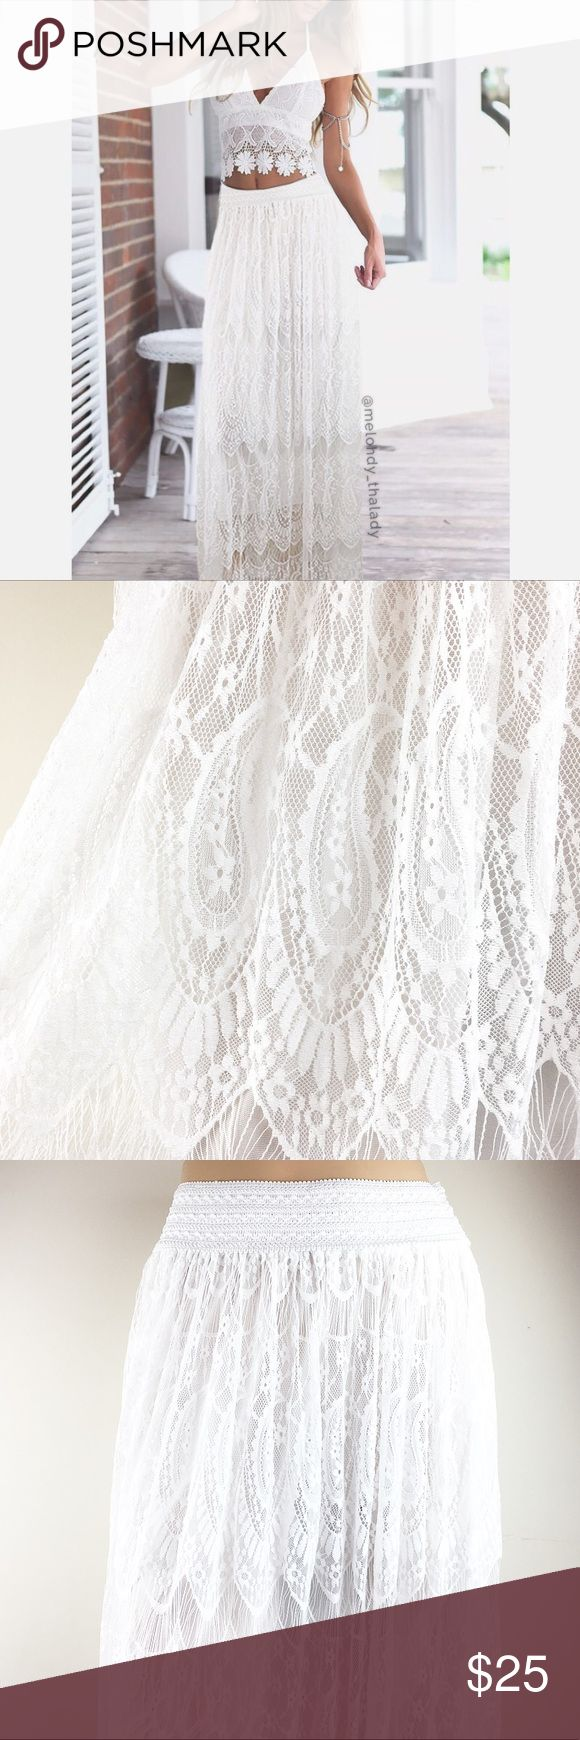 """White Lace Maxi Skirt White lace maxi skirt double layered. Skirt has a elastic waistband. Beautiful piece.   Measurements  Size M Length: 39.5"""" Waiter: 13"""" (stretches to 19"""")  Content  65% Cotton  35% Polyester   ▪️NWT No Trade Dresses Maxi"""